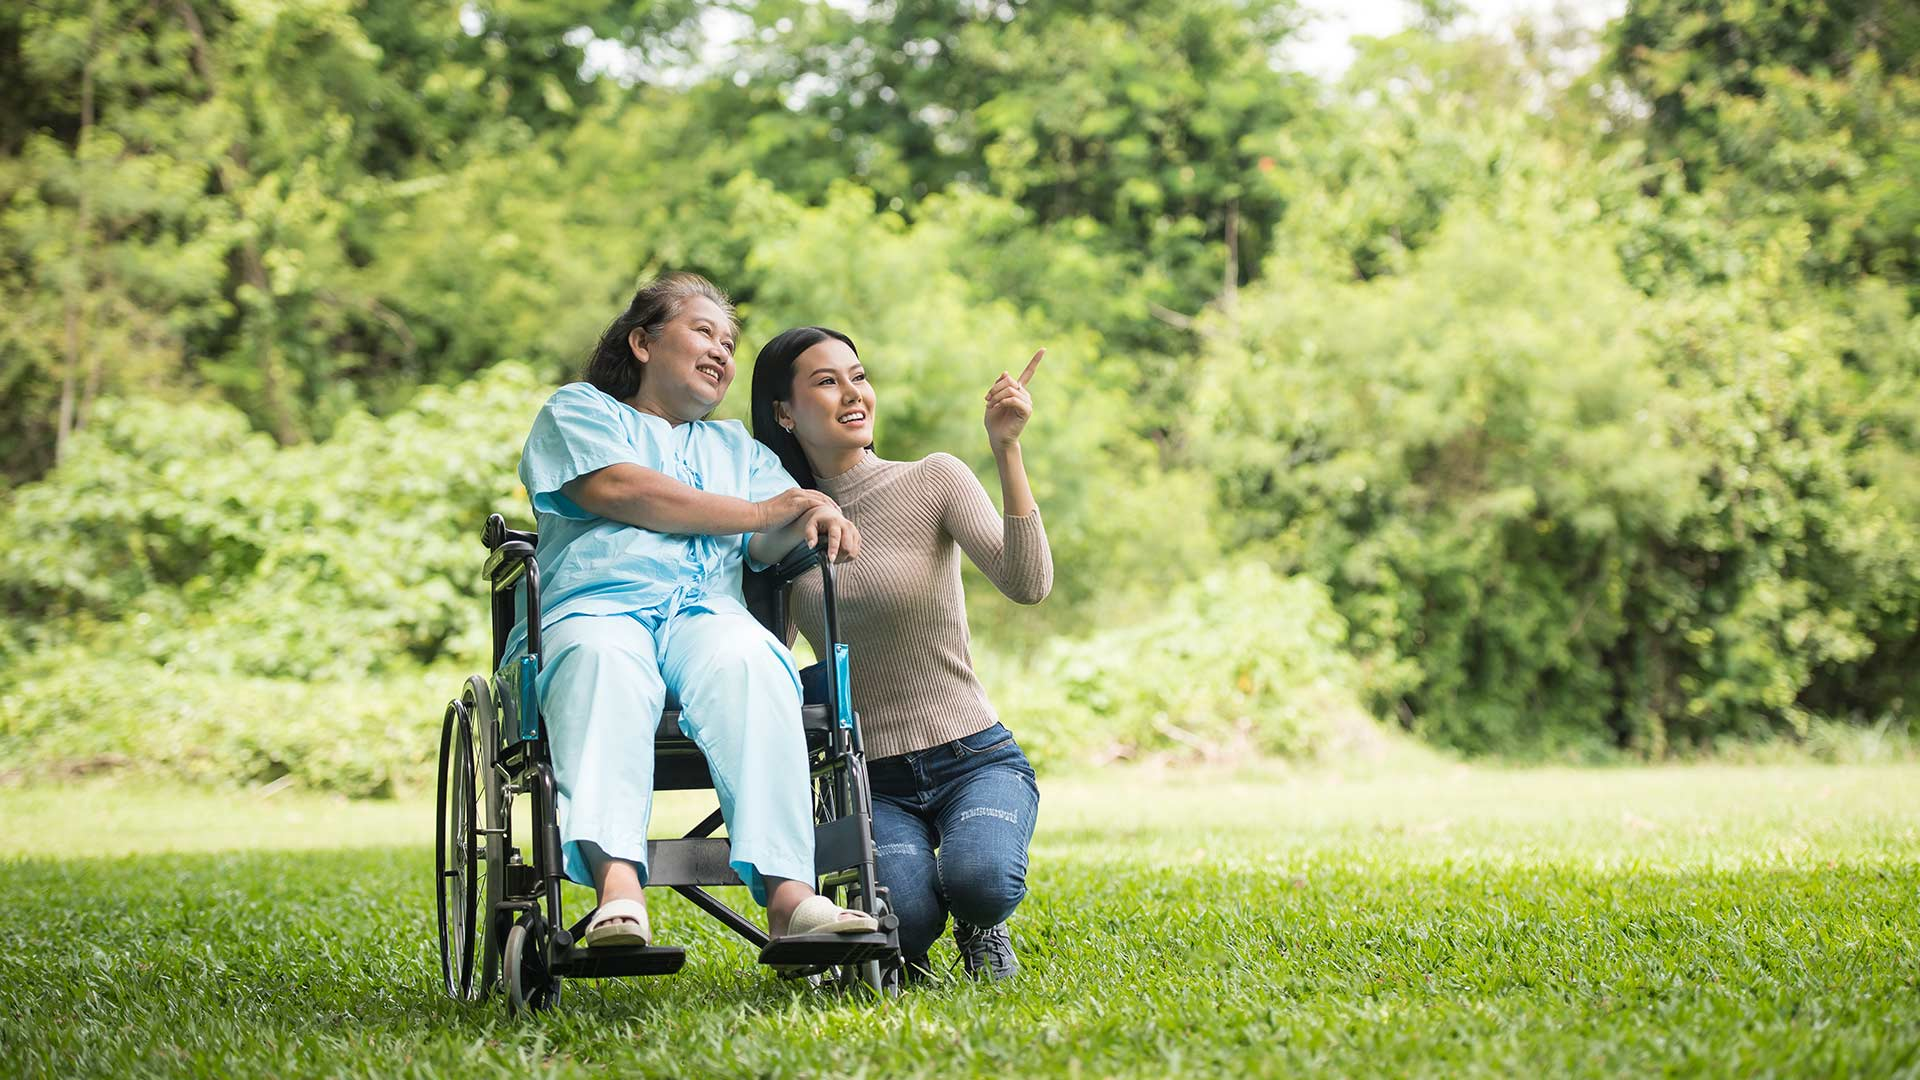 Giving Working Individuals Caregiver Support